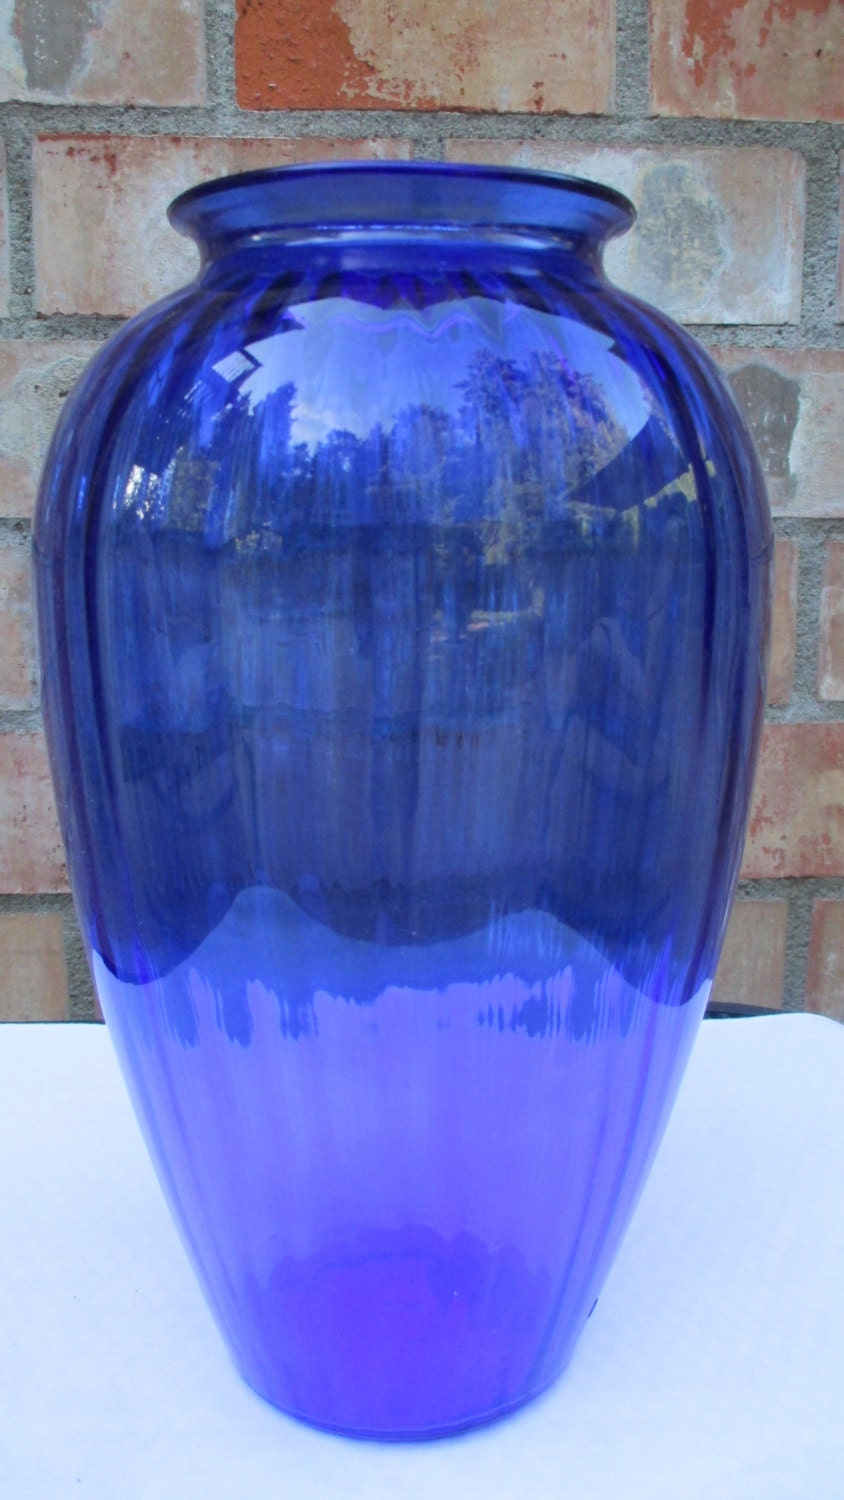 Ex Large Anchor Hocking Cobalt Blue Vase 12 5 8